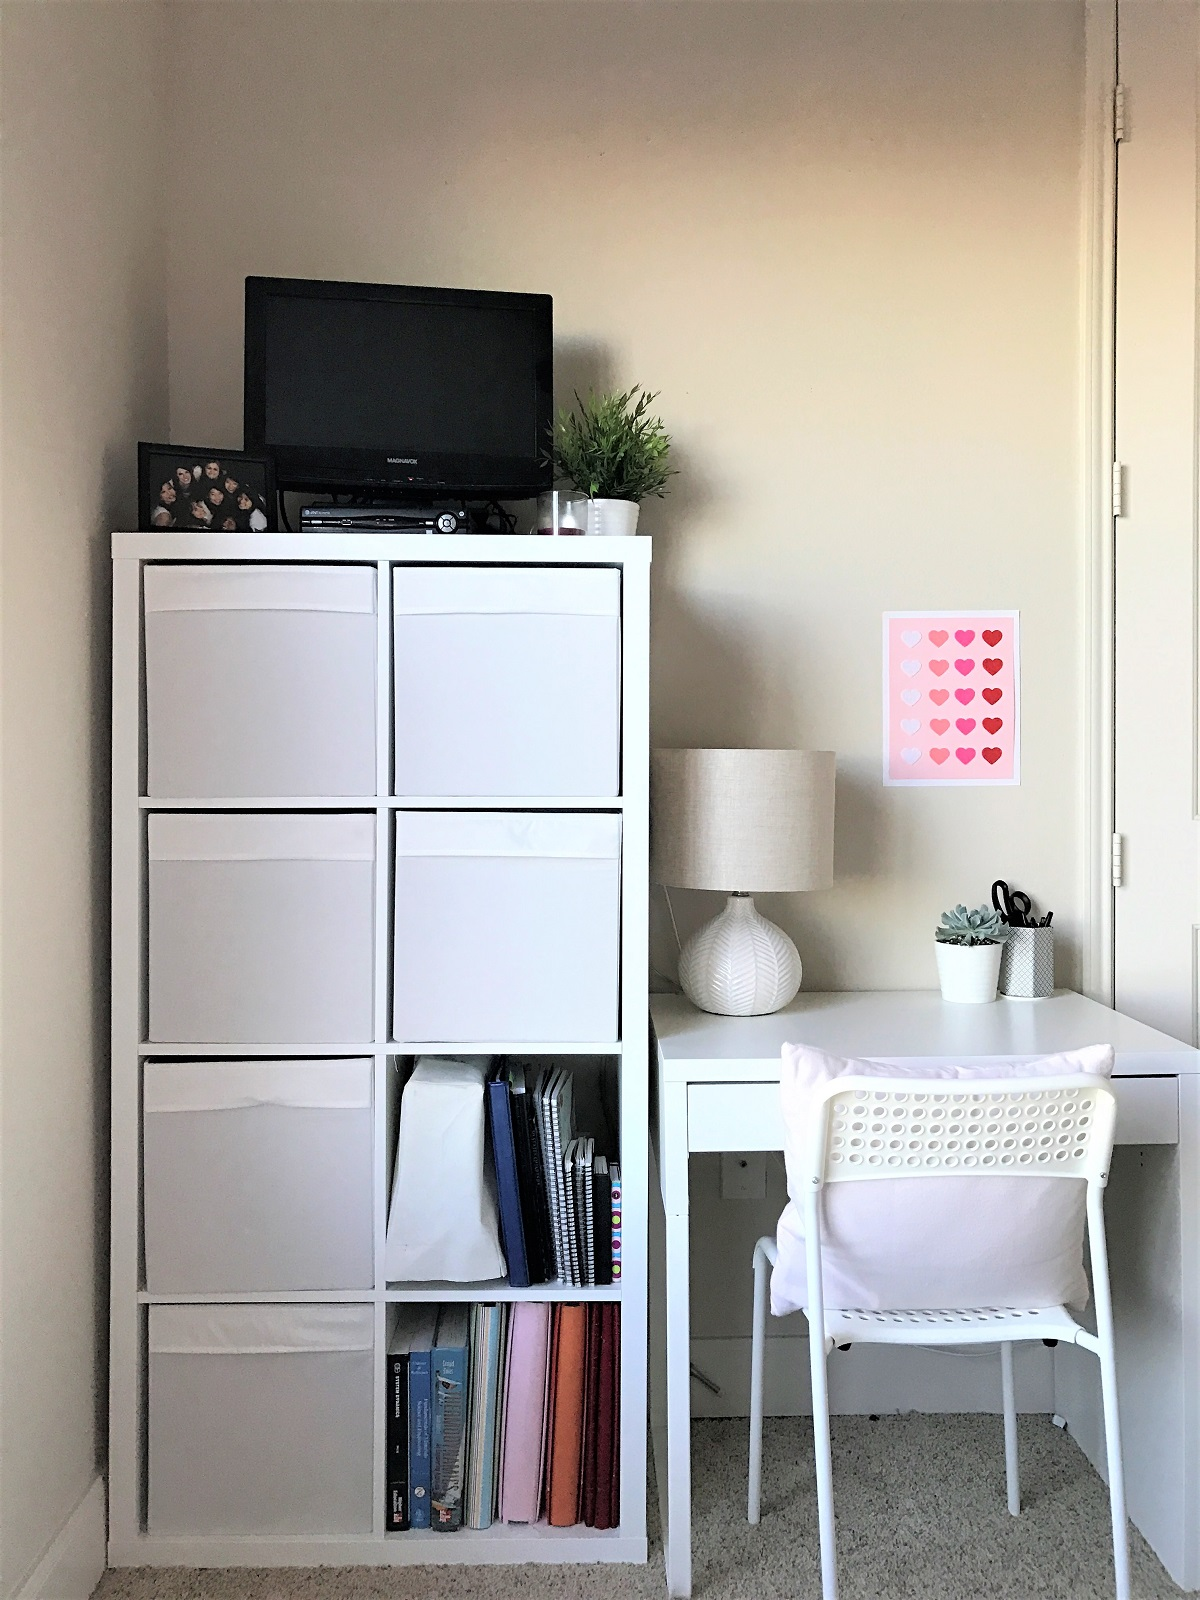 How to Organize a Small Space – Bunny Baubles